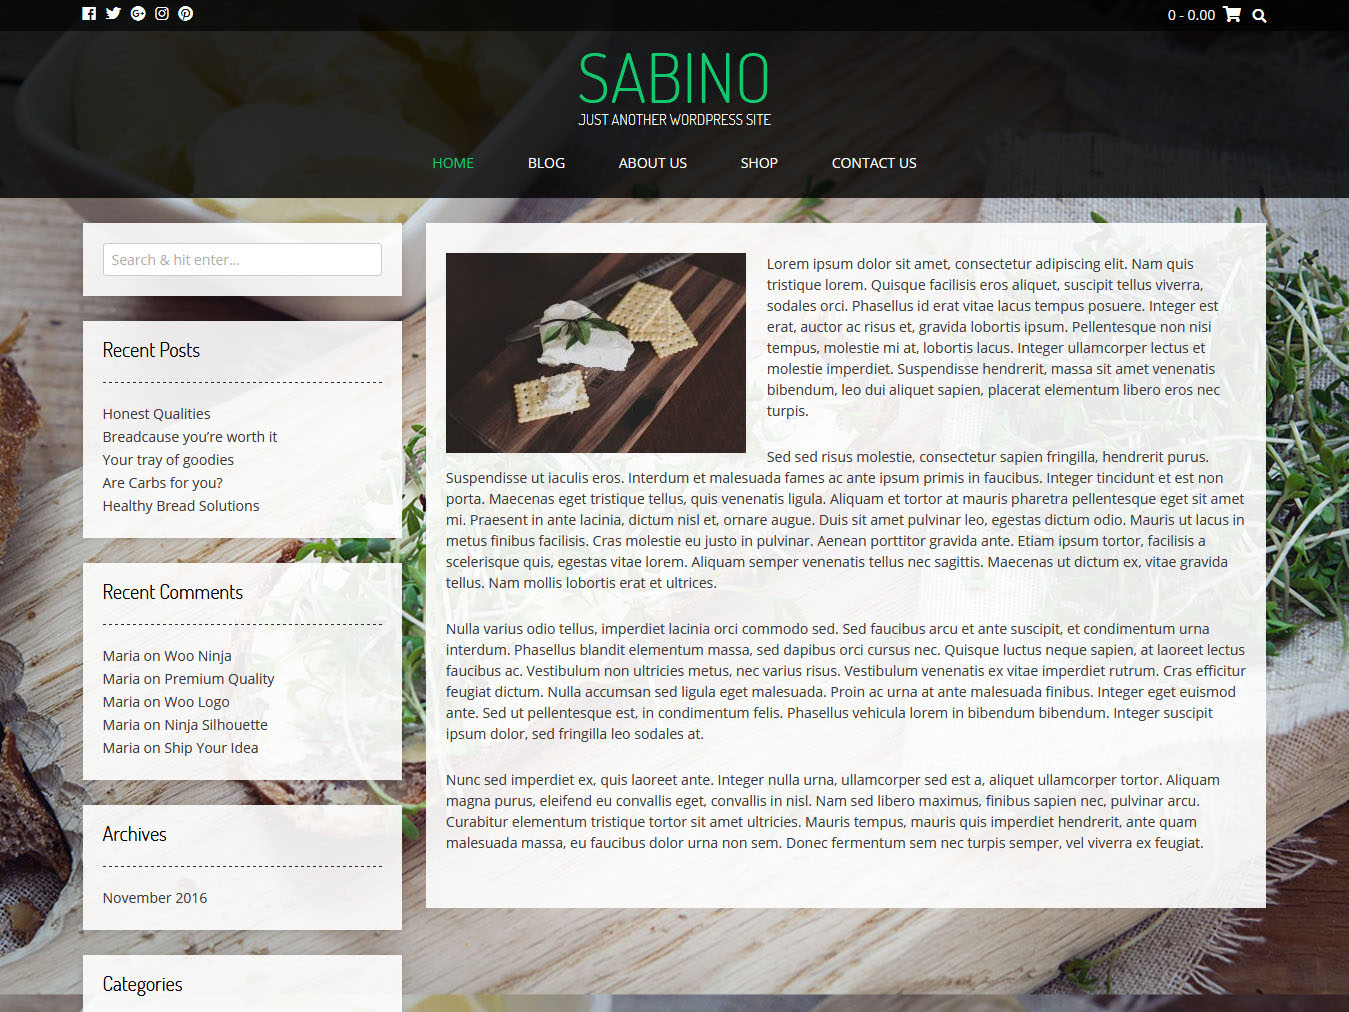 Sabino - Best Free WordPress WooCommerce Theme